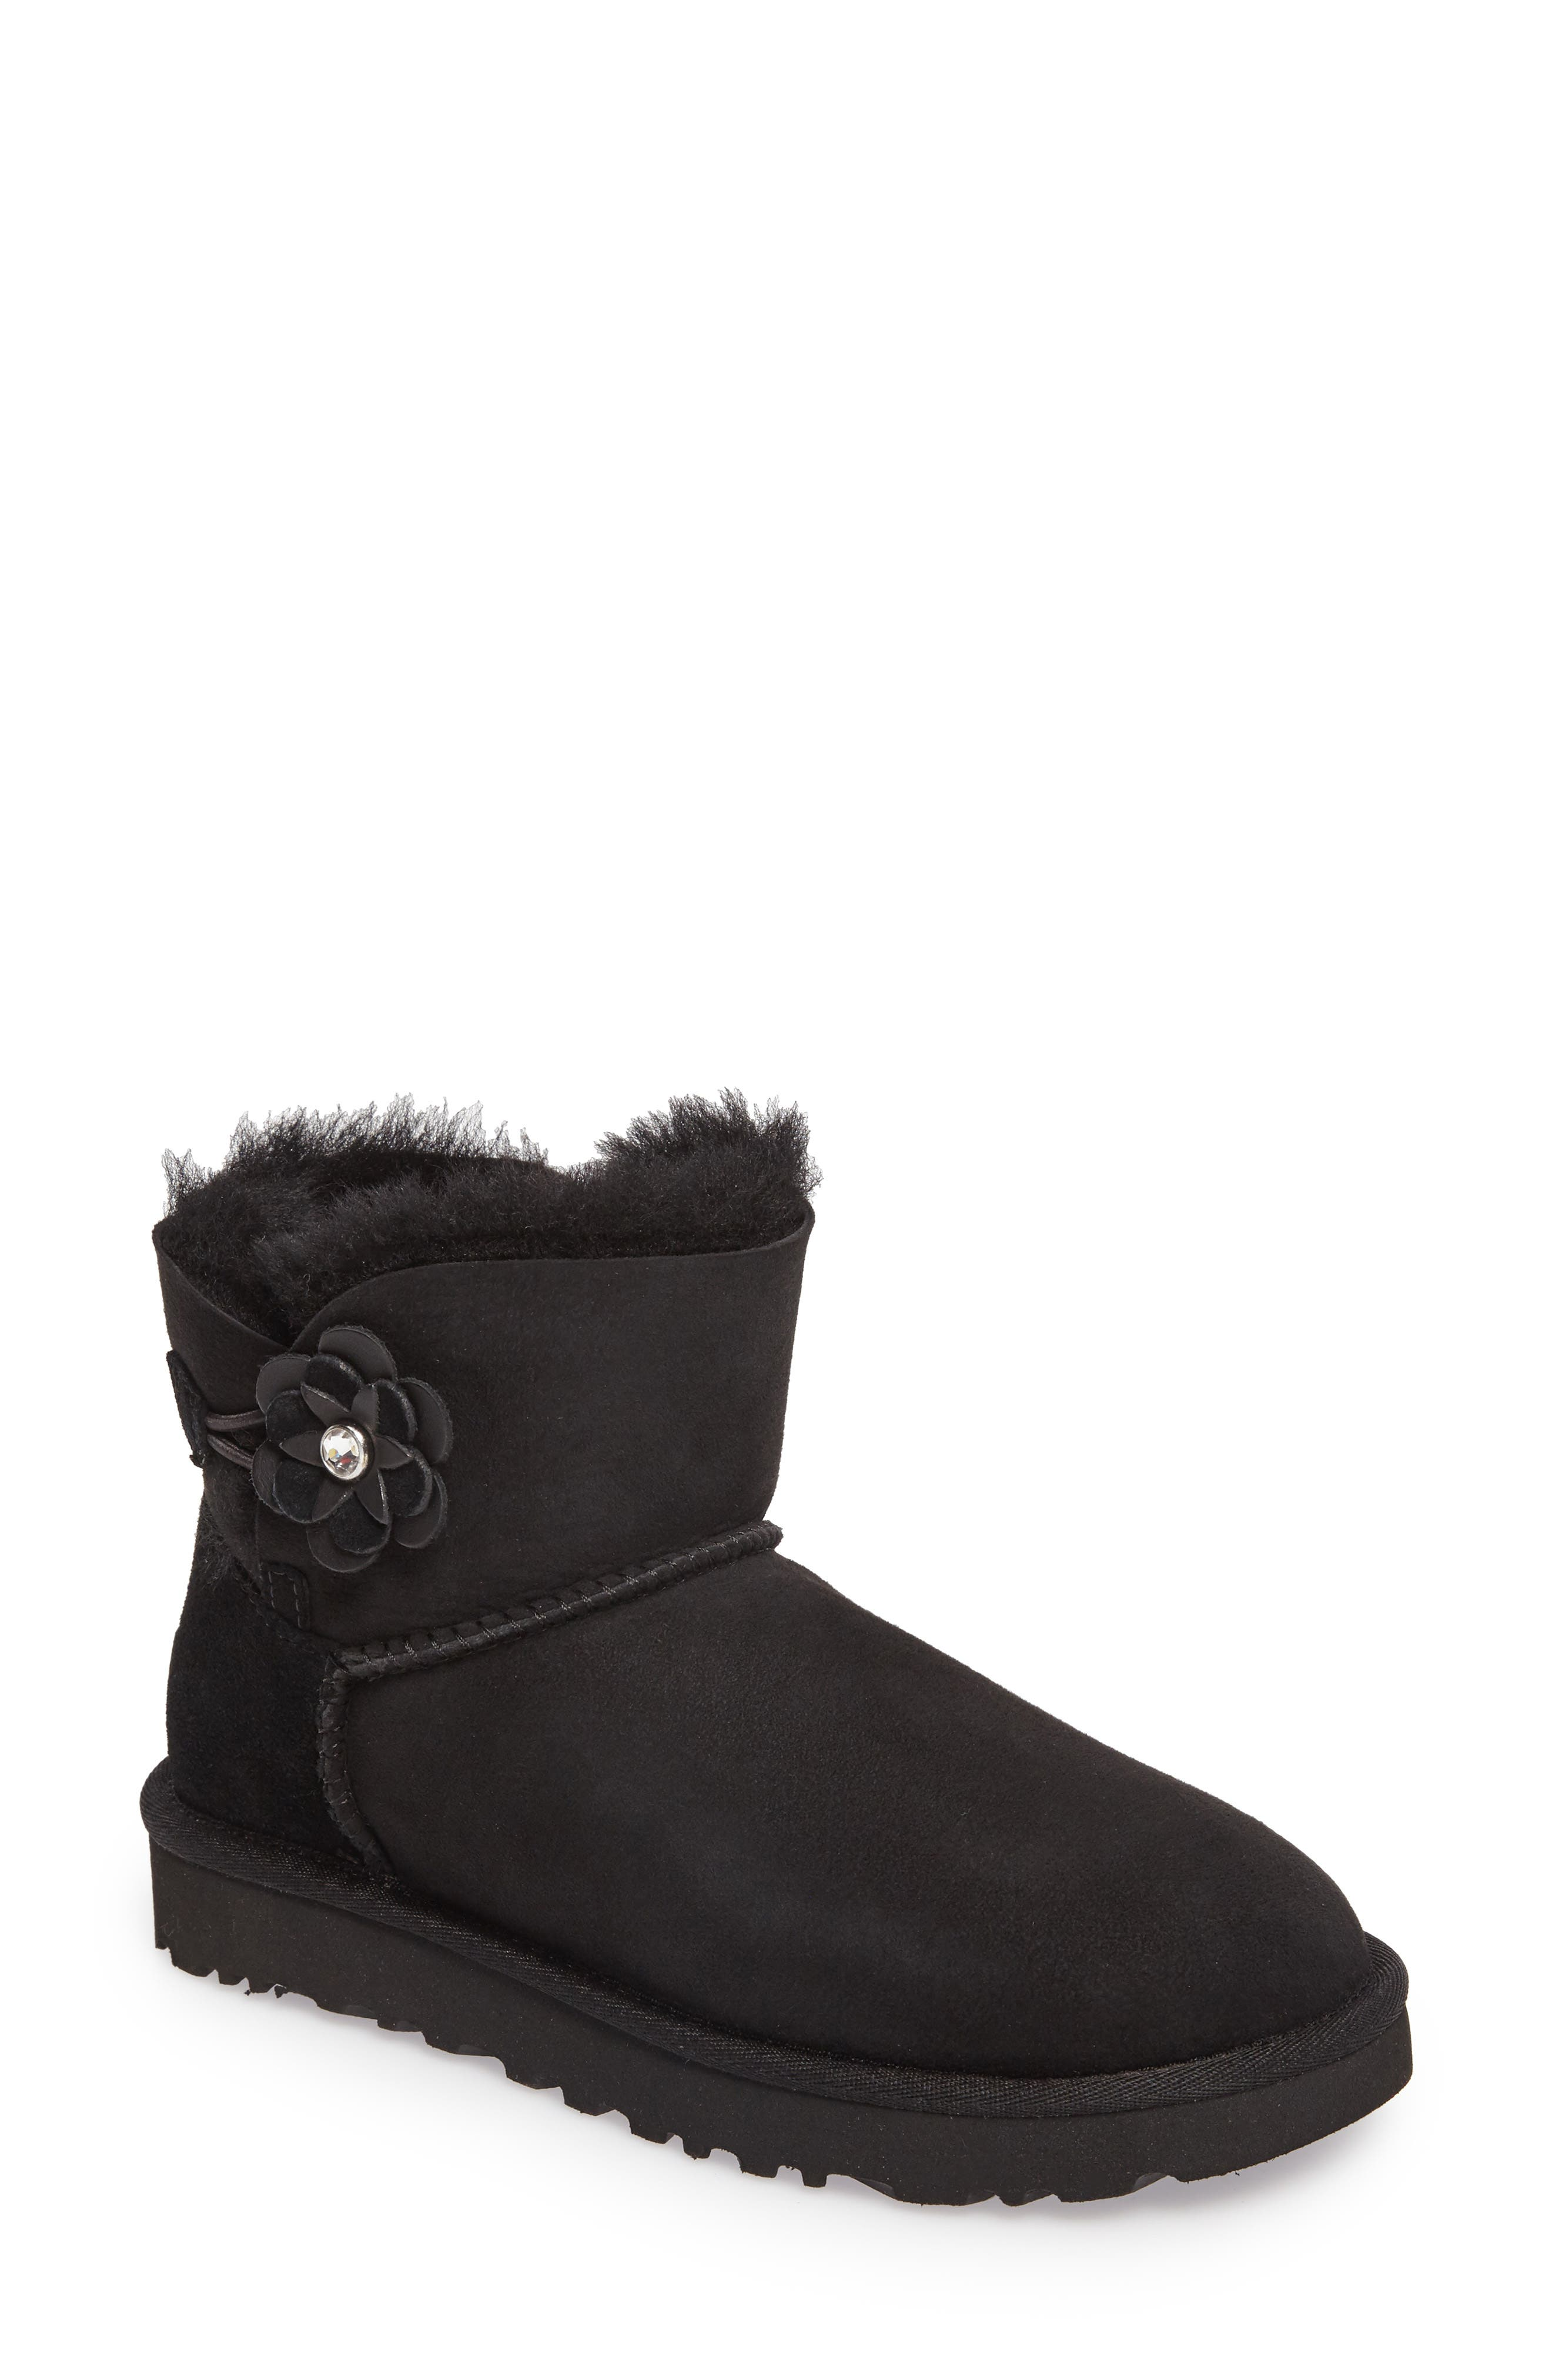 Alternate Image 1 Selected - UGG® Bailey Petal Genuine Shearling Lined Mini Boot (Women)